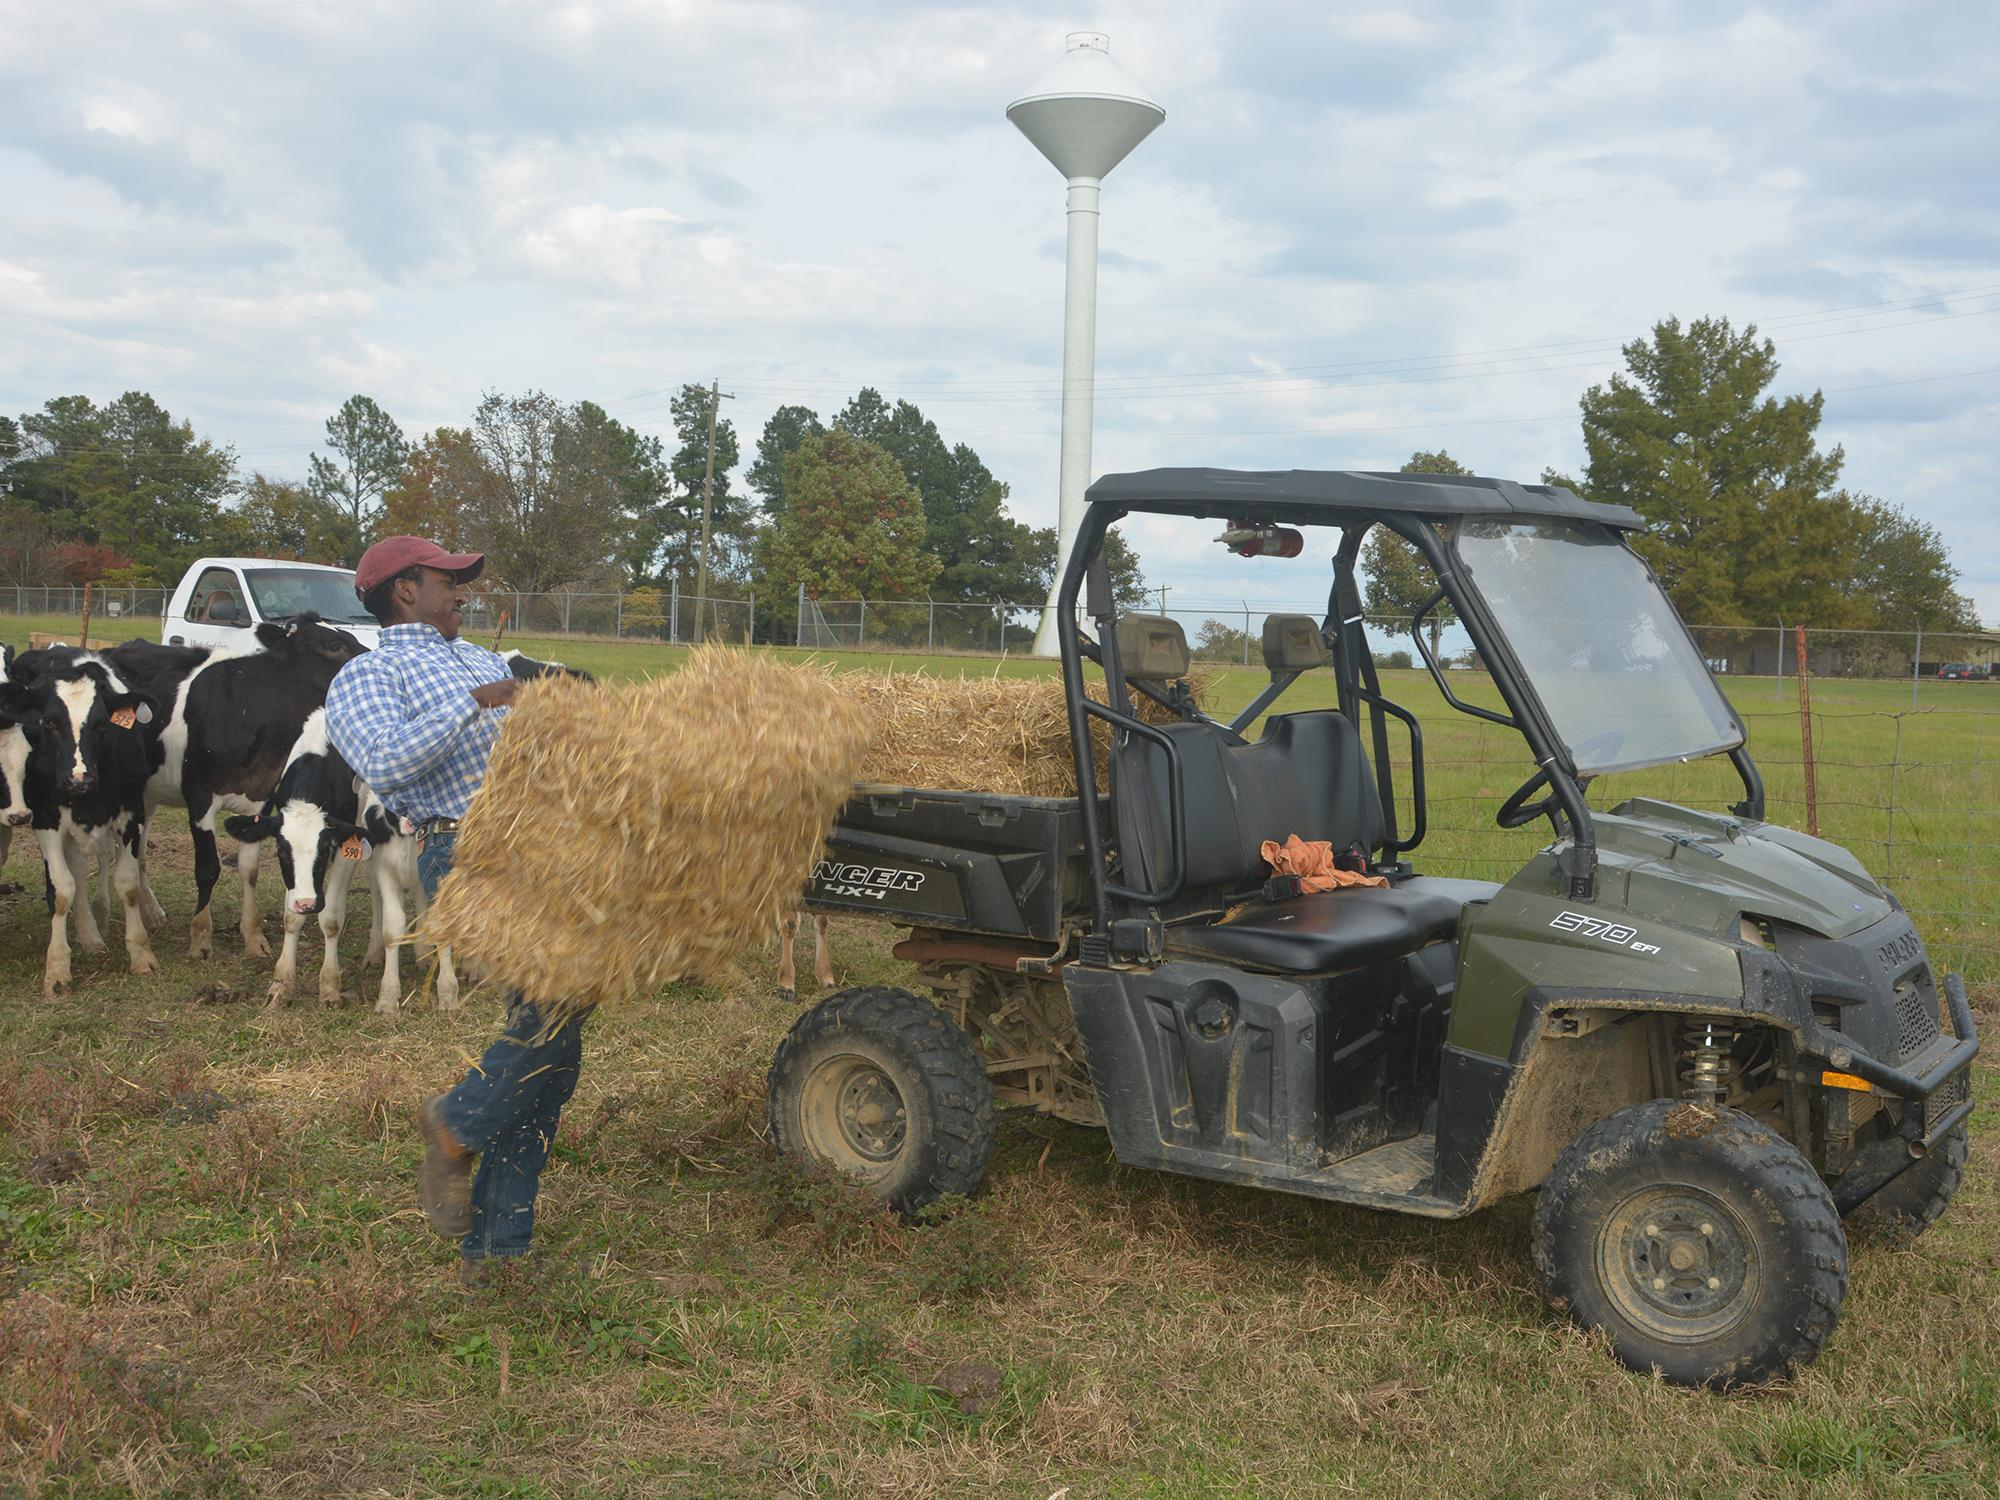 Young man strains to handle a bale of hay at the back of a farm utility vehicle in a pasture with black and white dairy heifers clustered behind and watching.